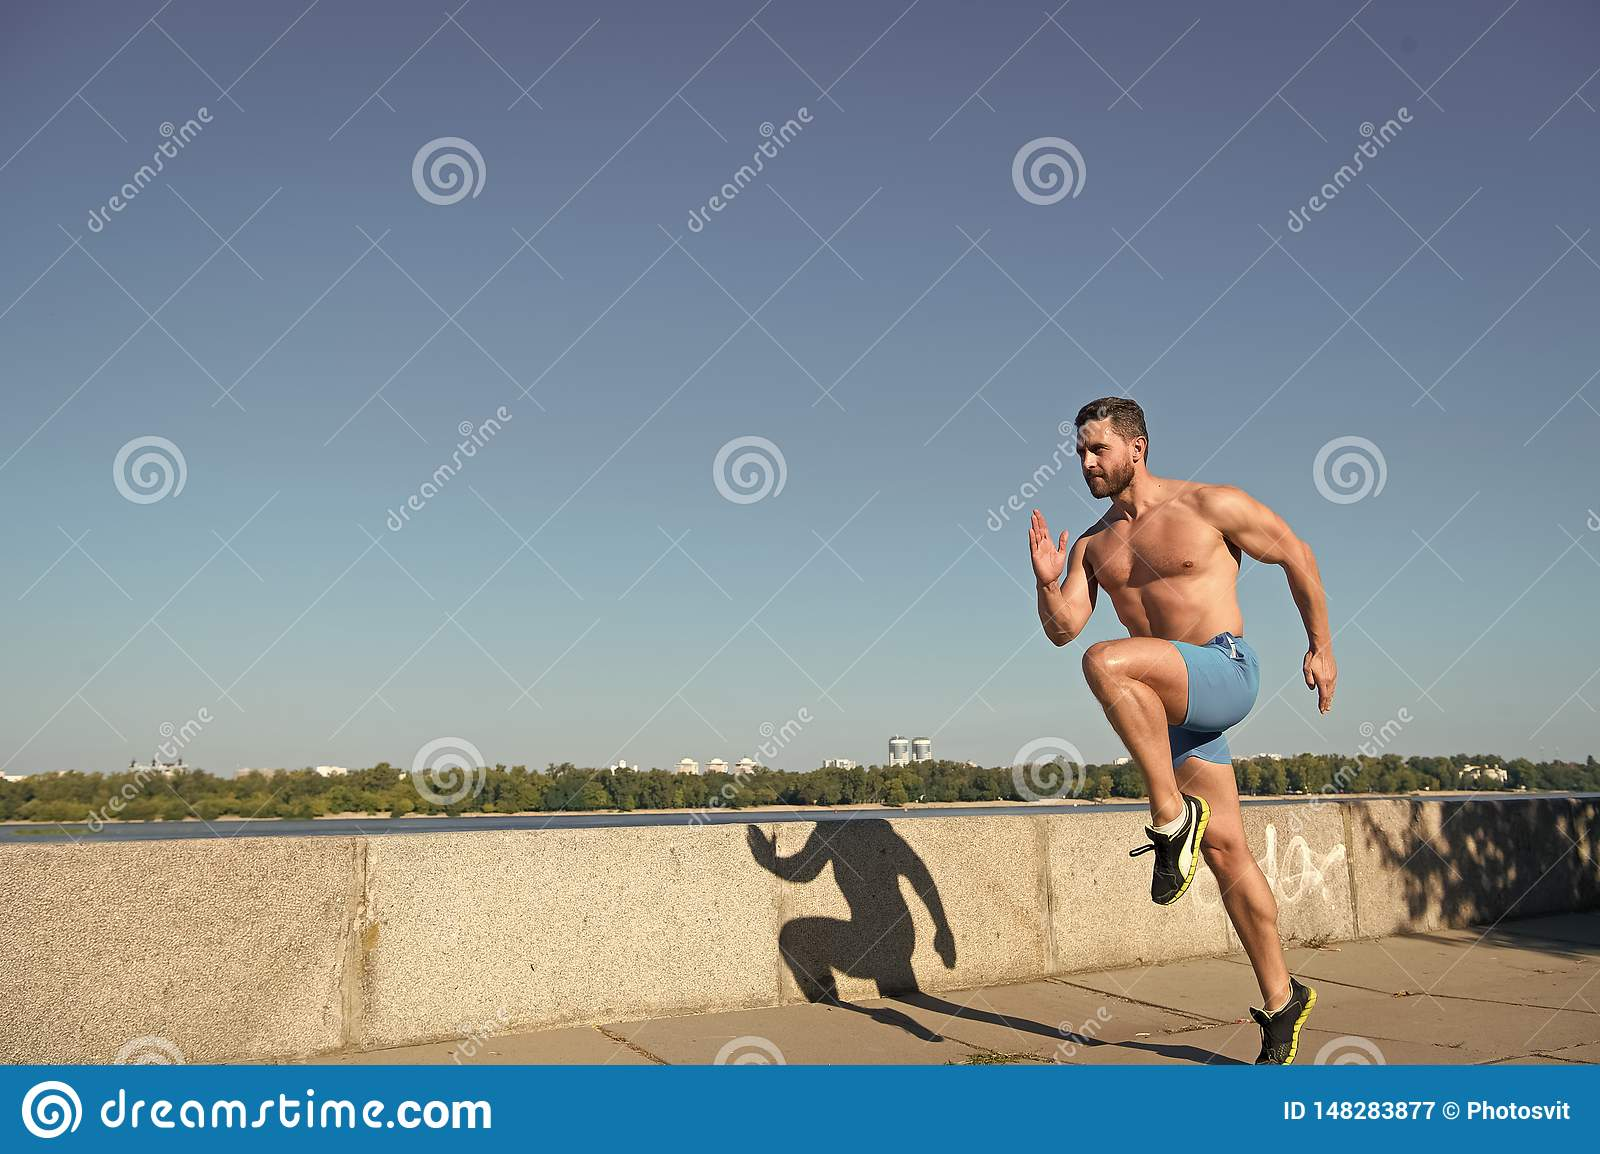 Man athlete muscular torso training outdoor. Morning run fills with energy. Runner training morning during sunrise